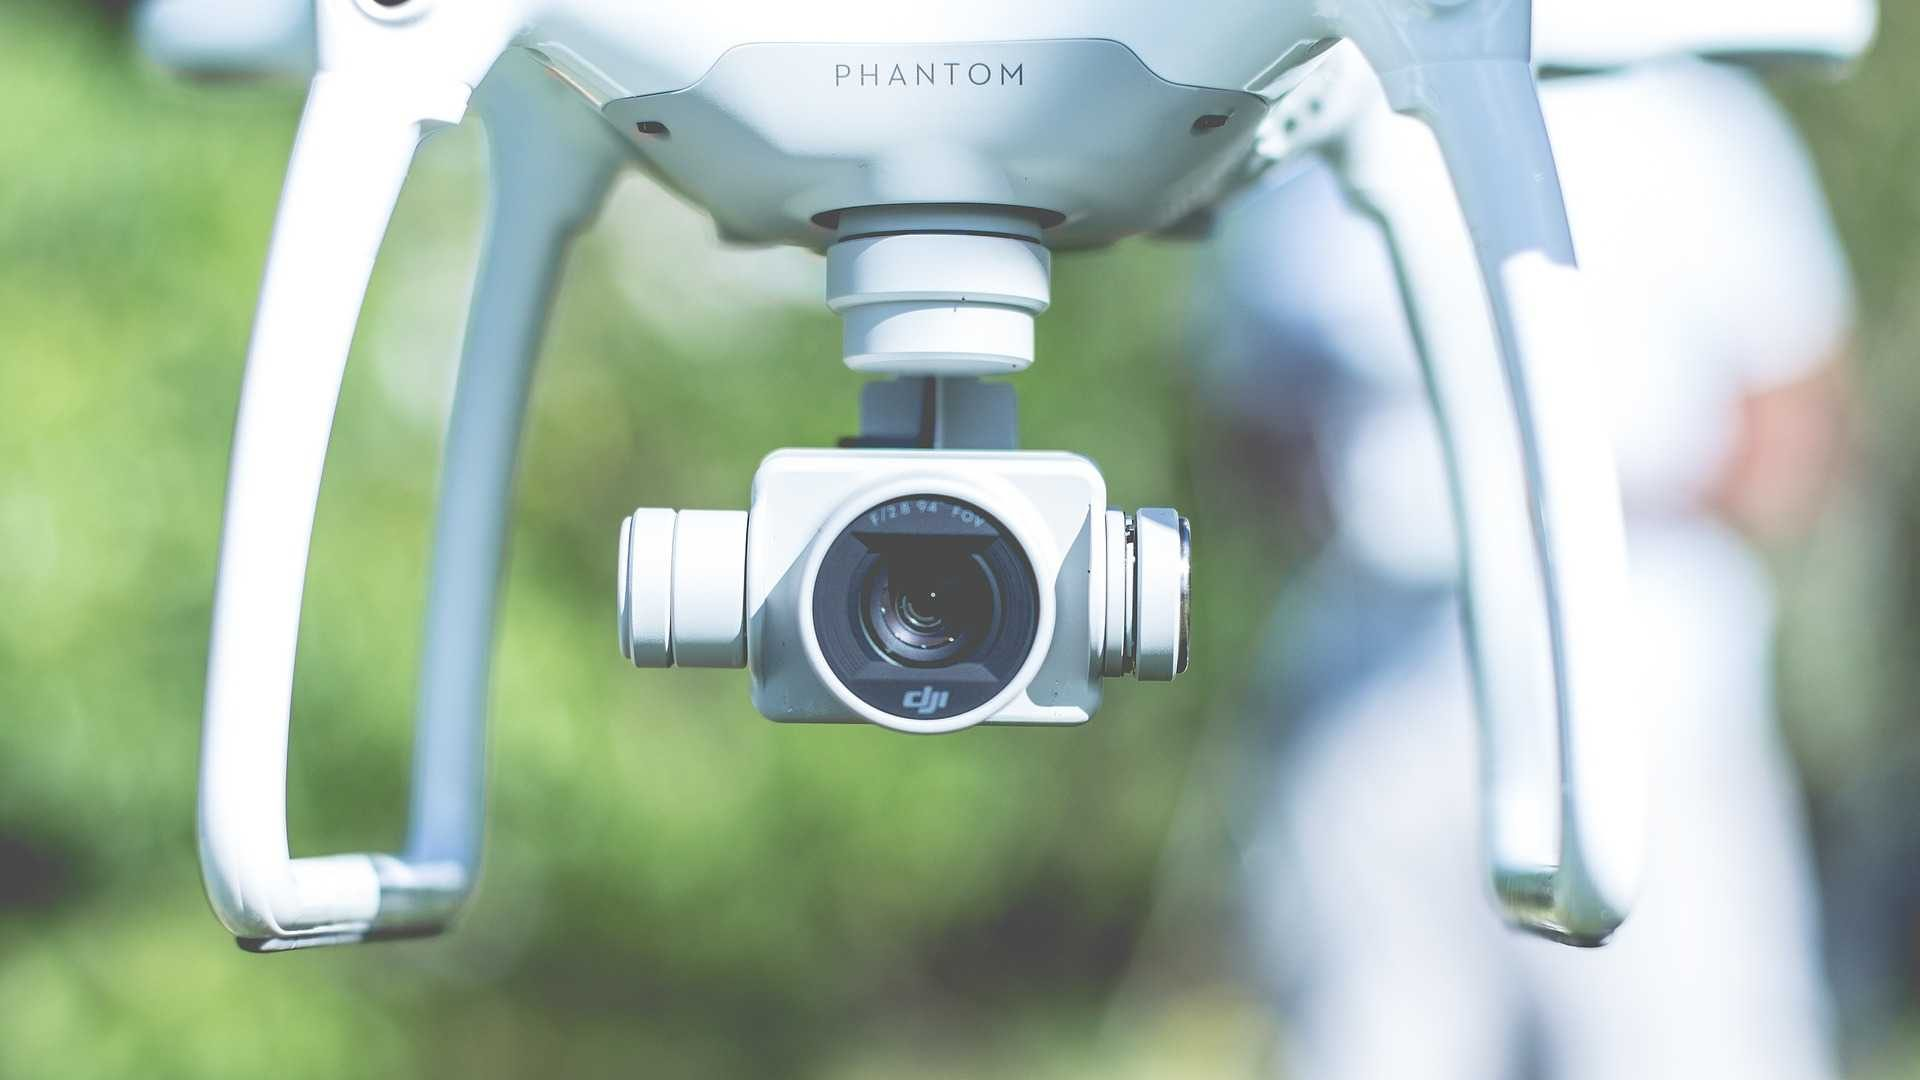 Phantom 4 pro camera wit in de lucht